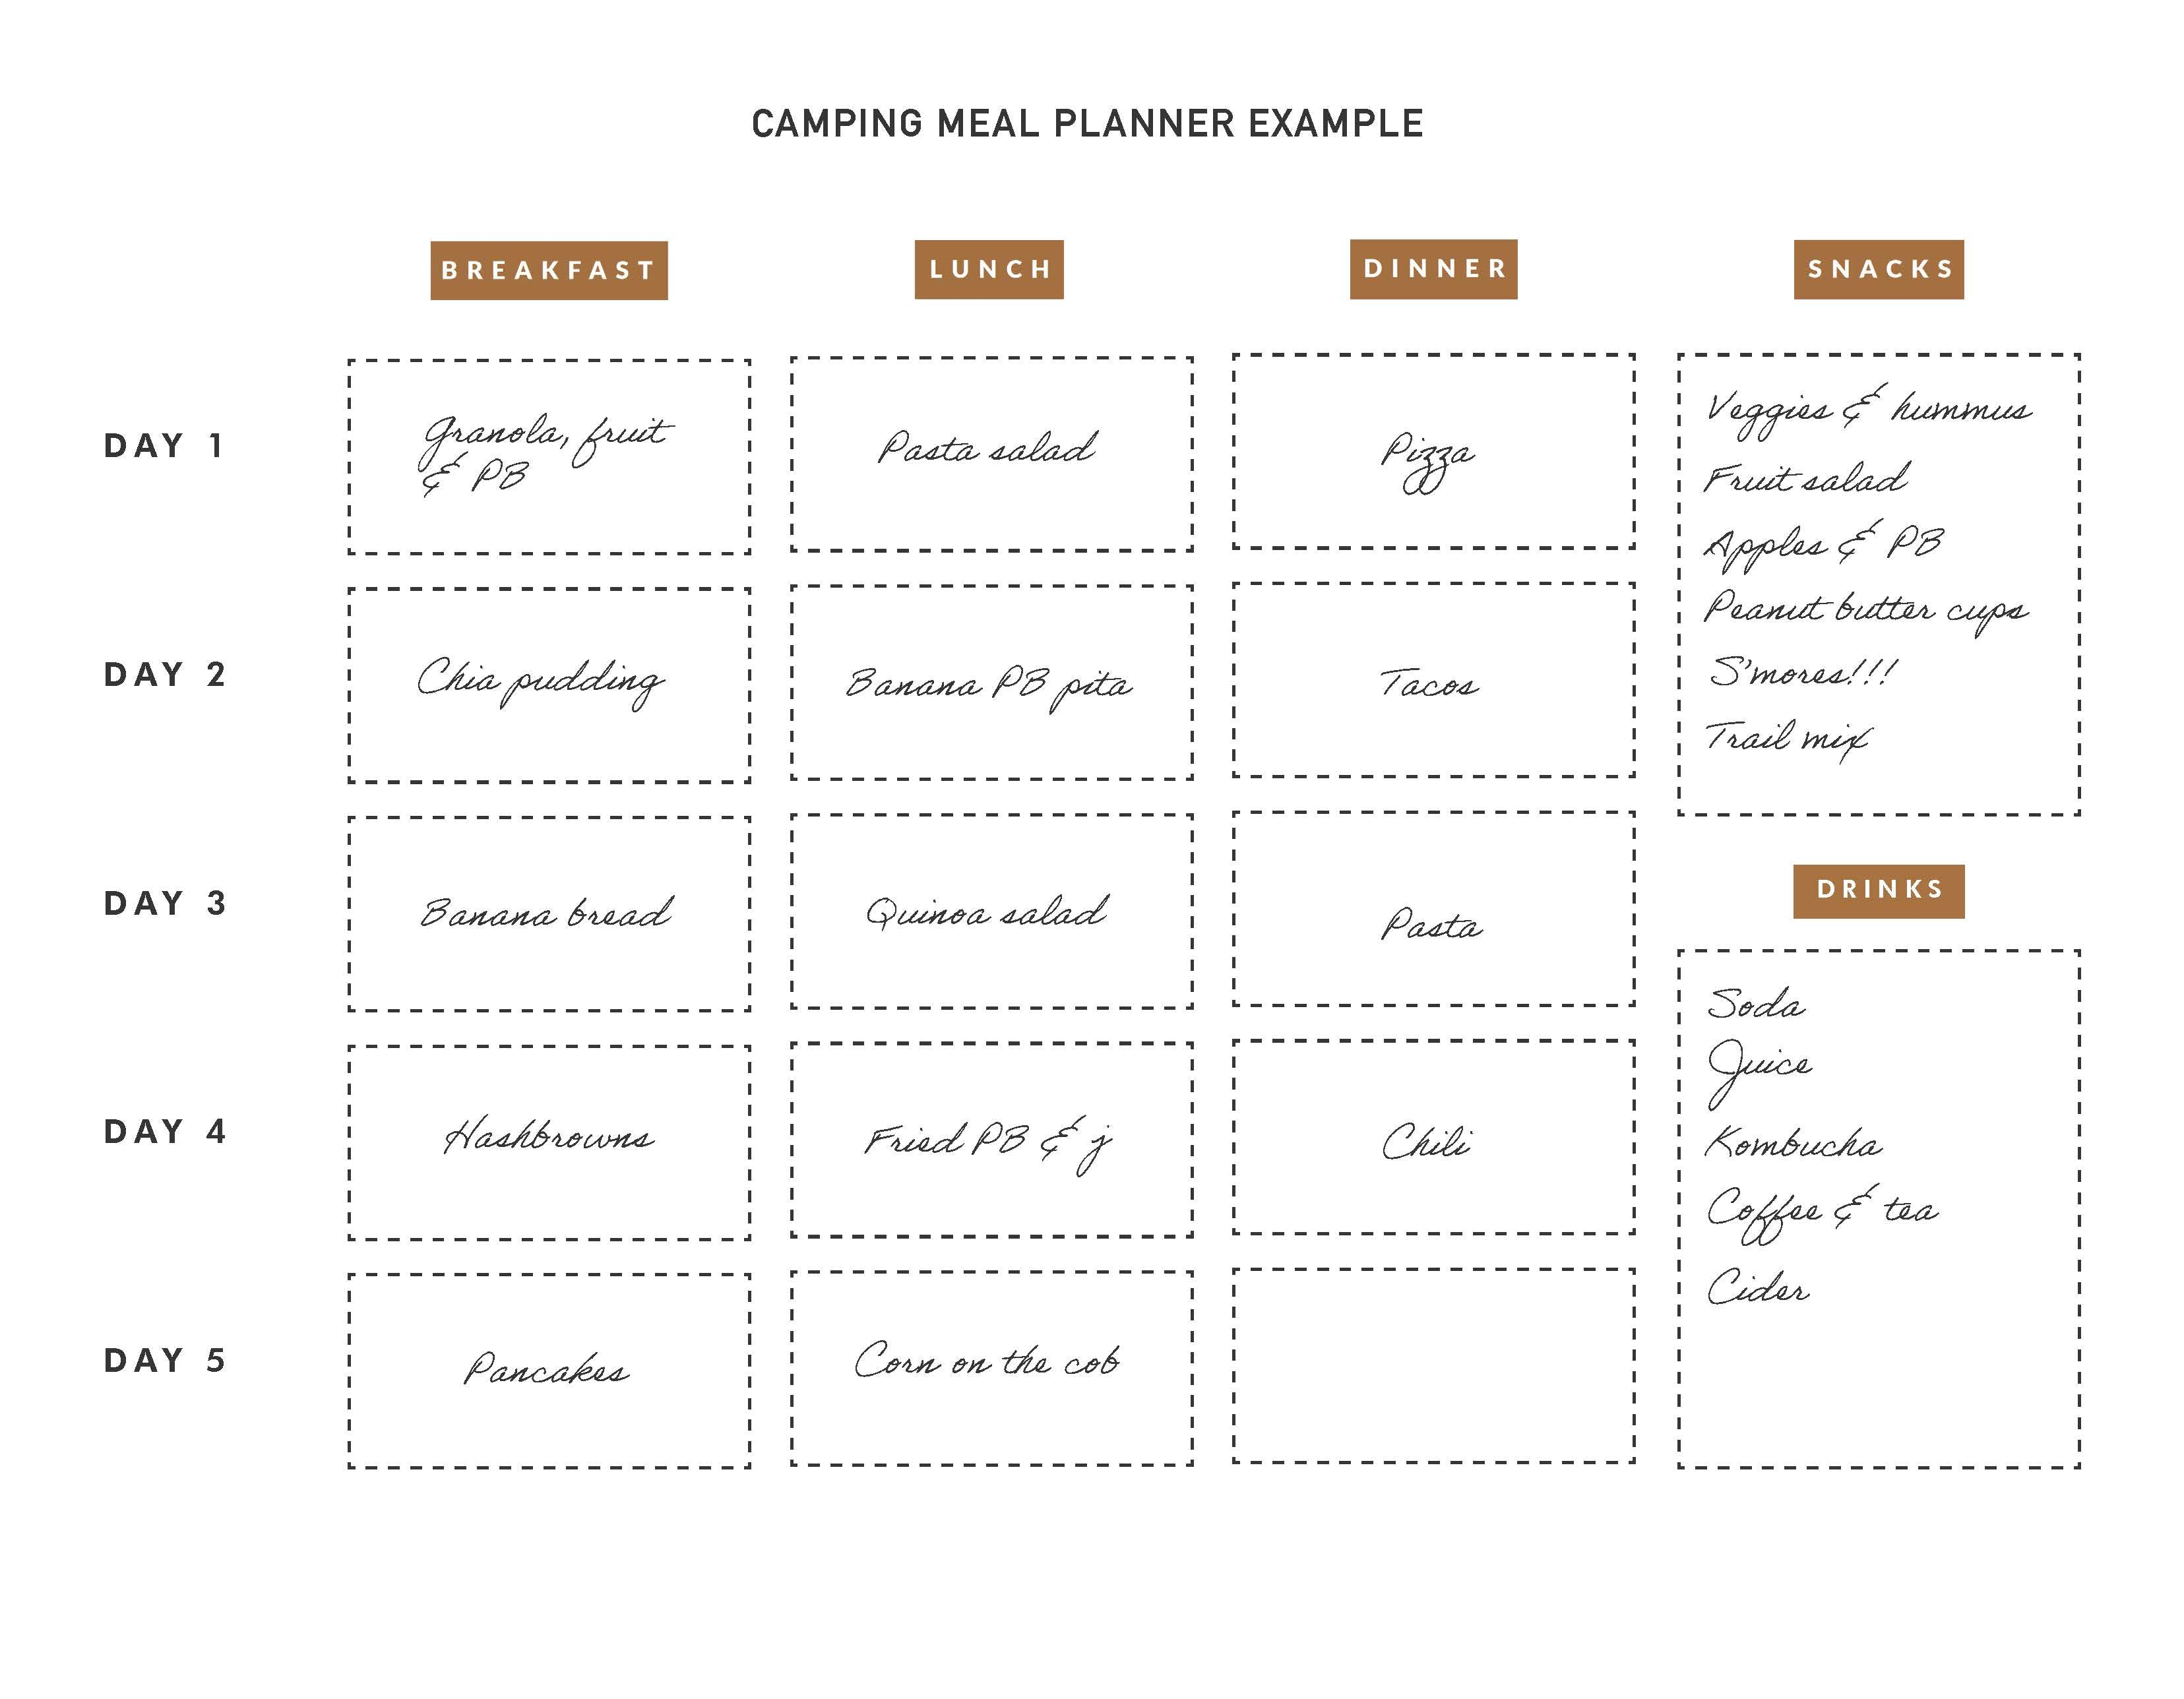 Camping Meal Plan Example